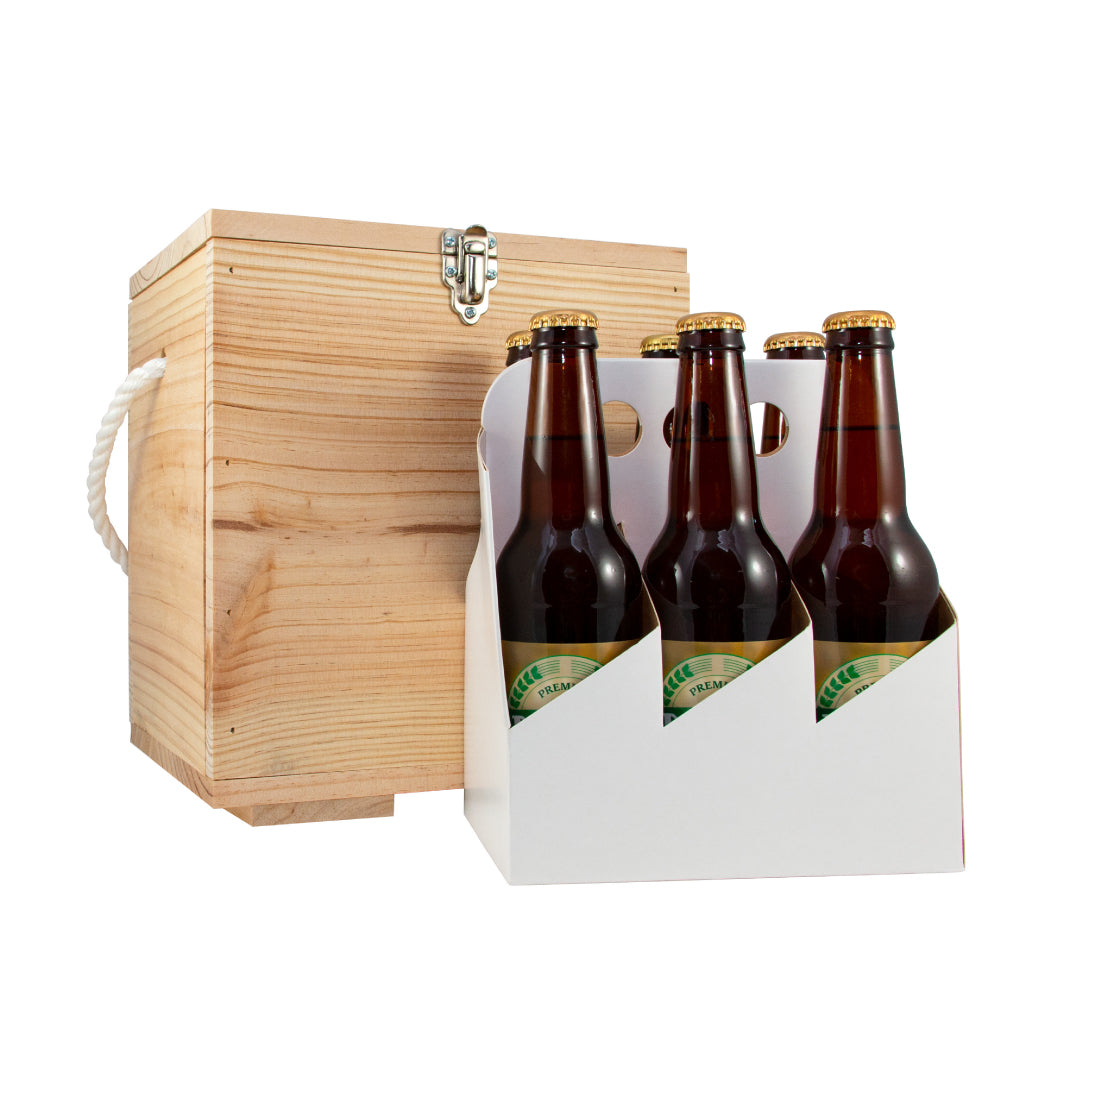 Craft Lager 4.6% - Wooden Beer Box - 6 pack